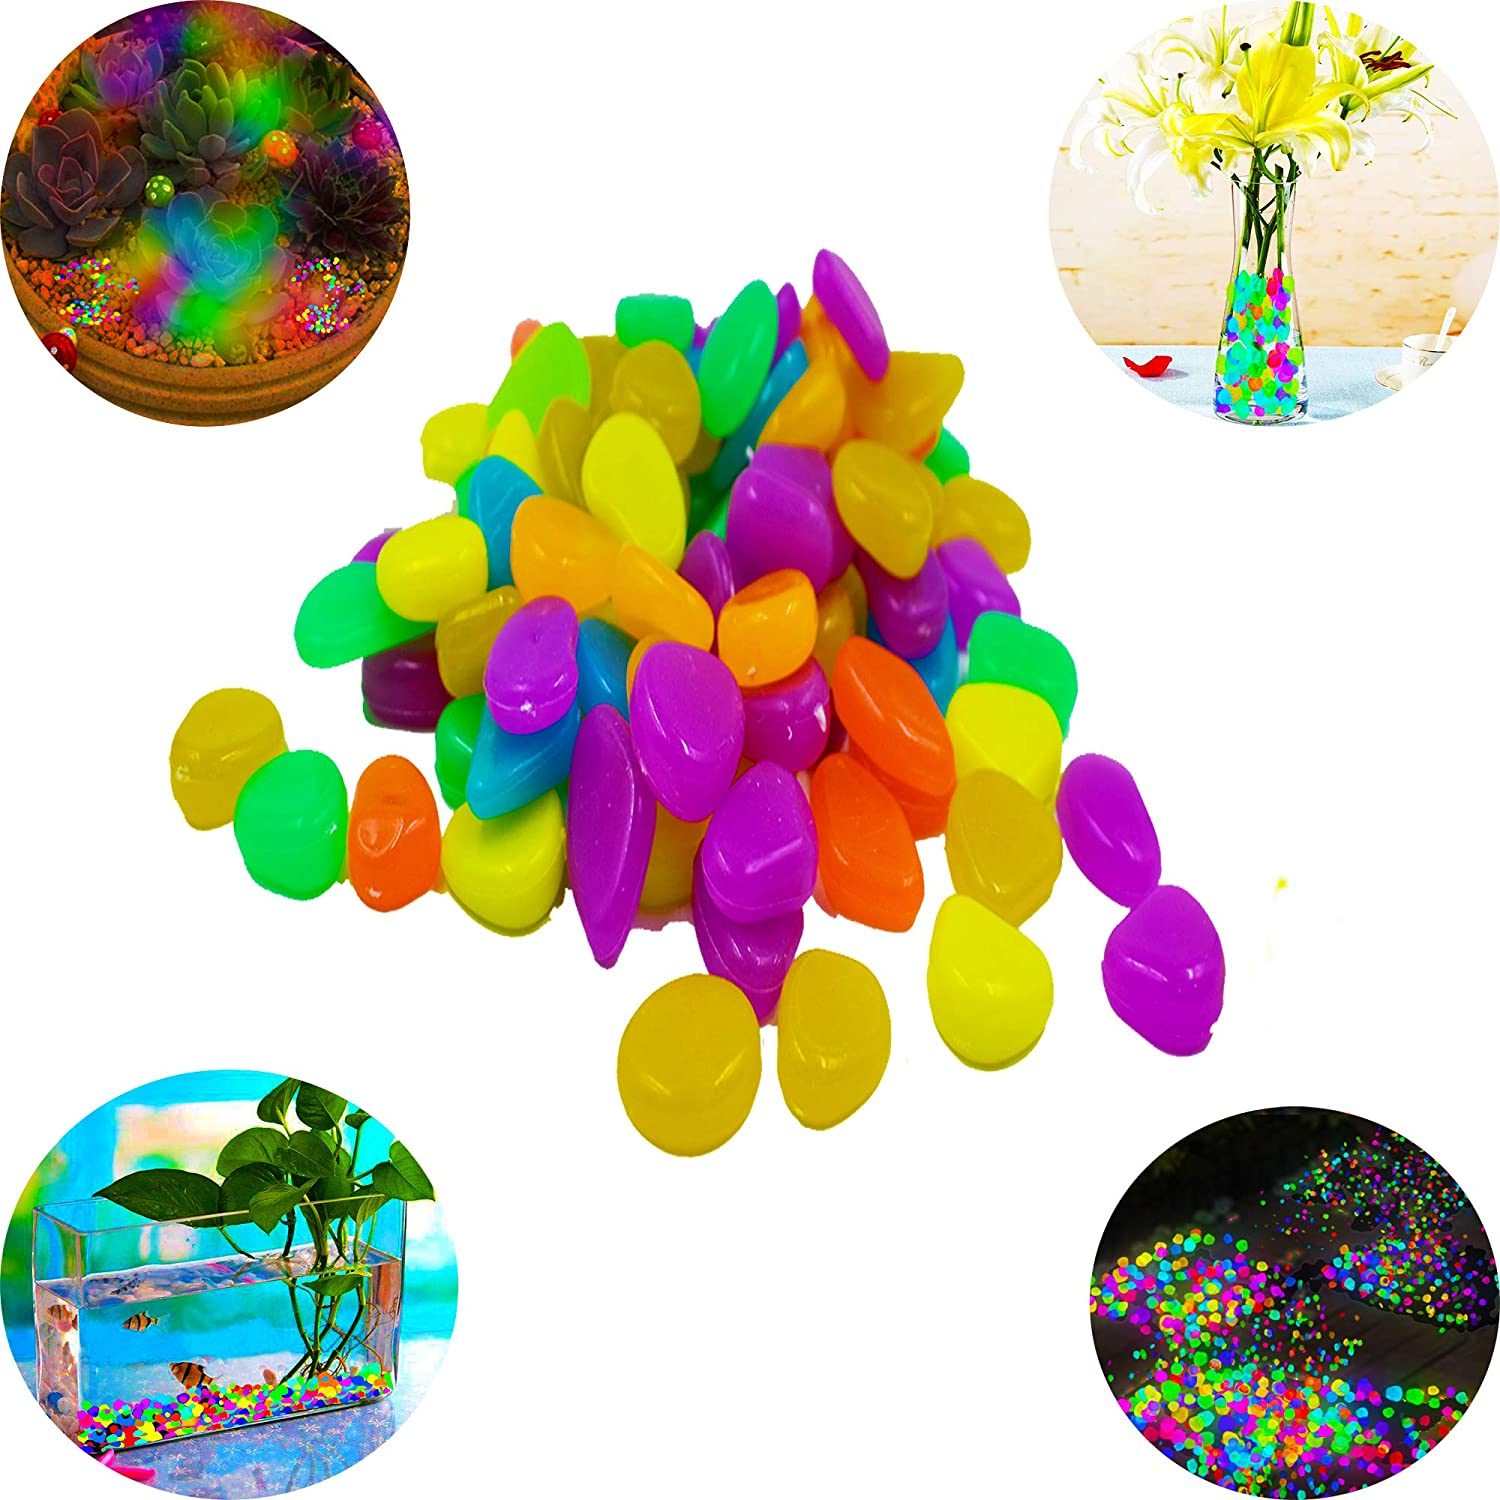 LiXiongBao 100 Pcs Colorful Luminous Stones Glow in The Dark Garden Pebbles Rocks for Home Vase Outdoor Walkways Garden Path Patio Lawn Garden Yard Fish Tank Decor Backyard Driveway Décor (Mix Color)